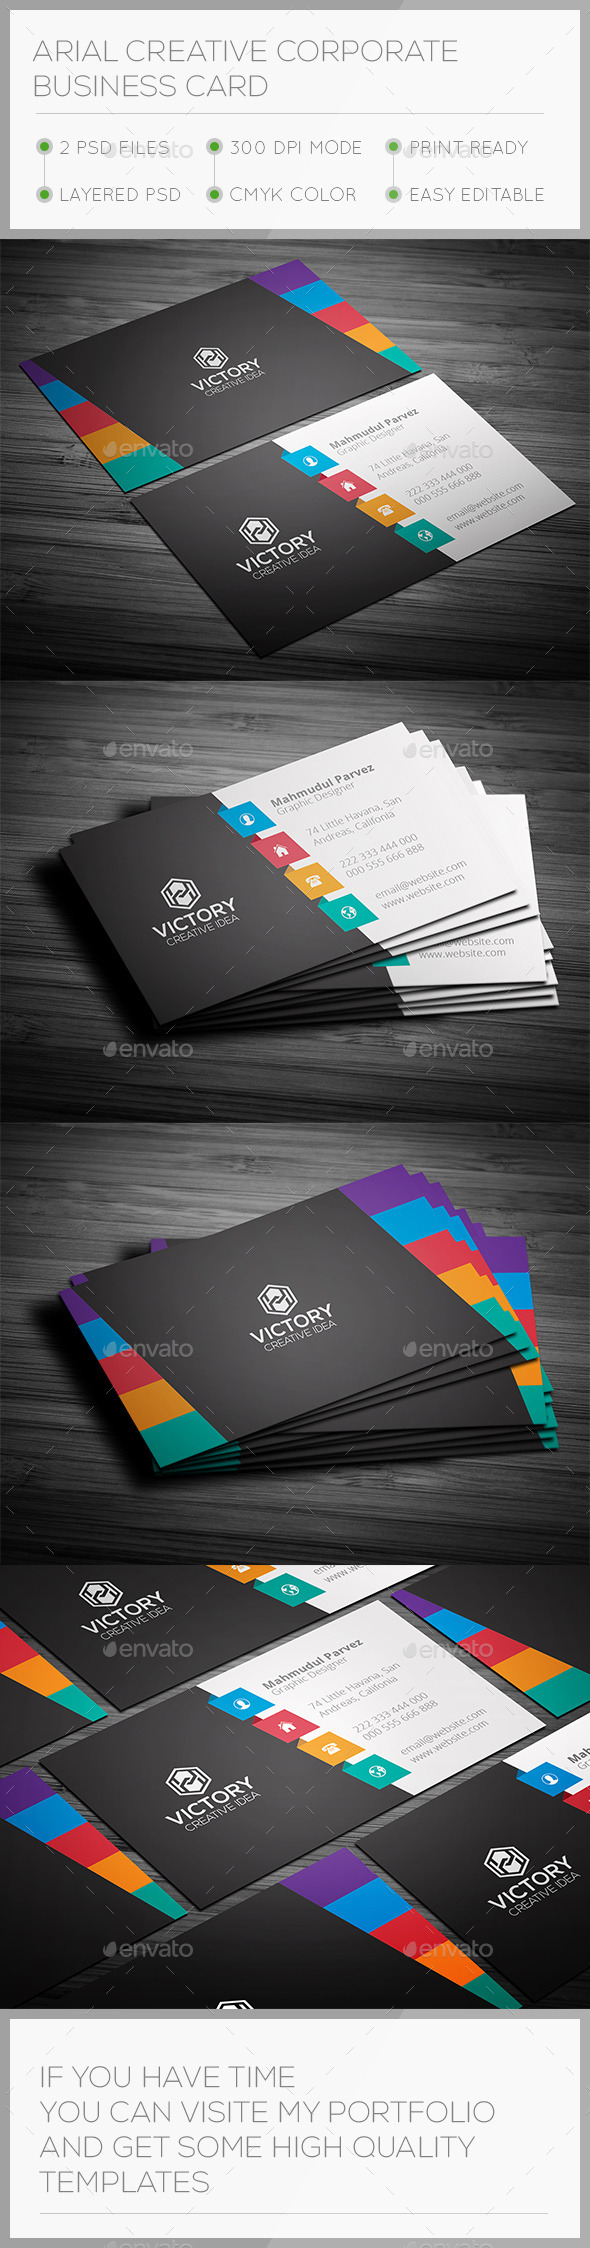 Arial Creative Business Card - Creative Business Cards